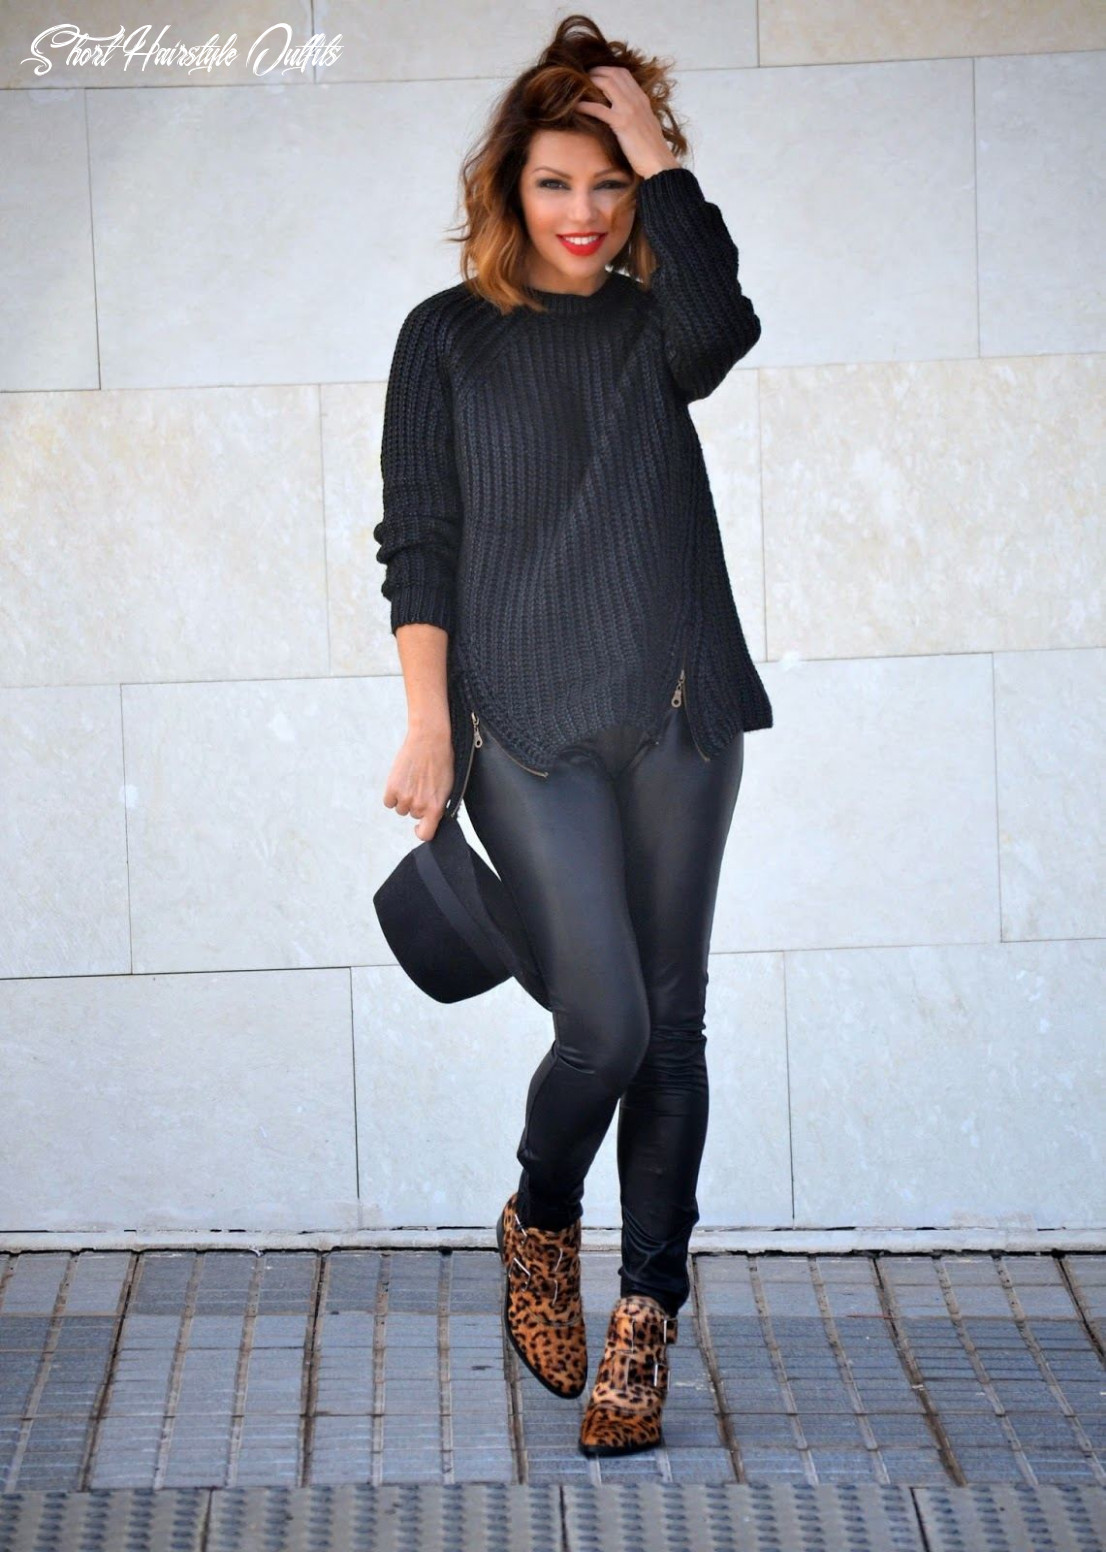 8 cute outfits that go with short hair dressing style ideas short hairstyle outfits